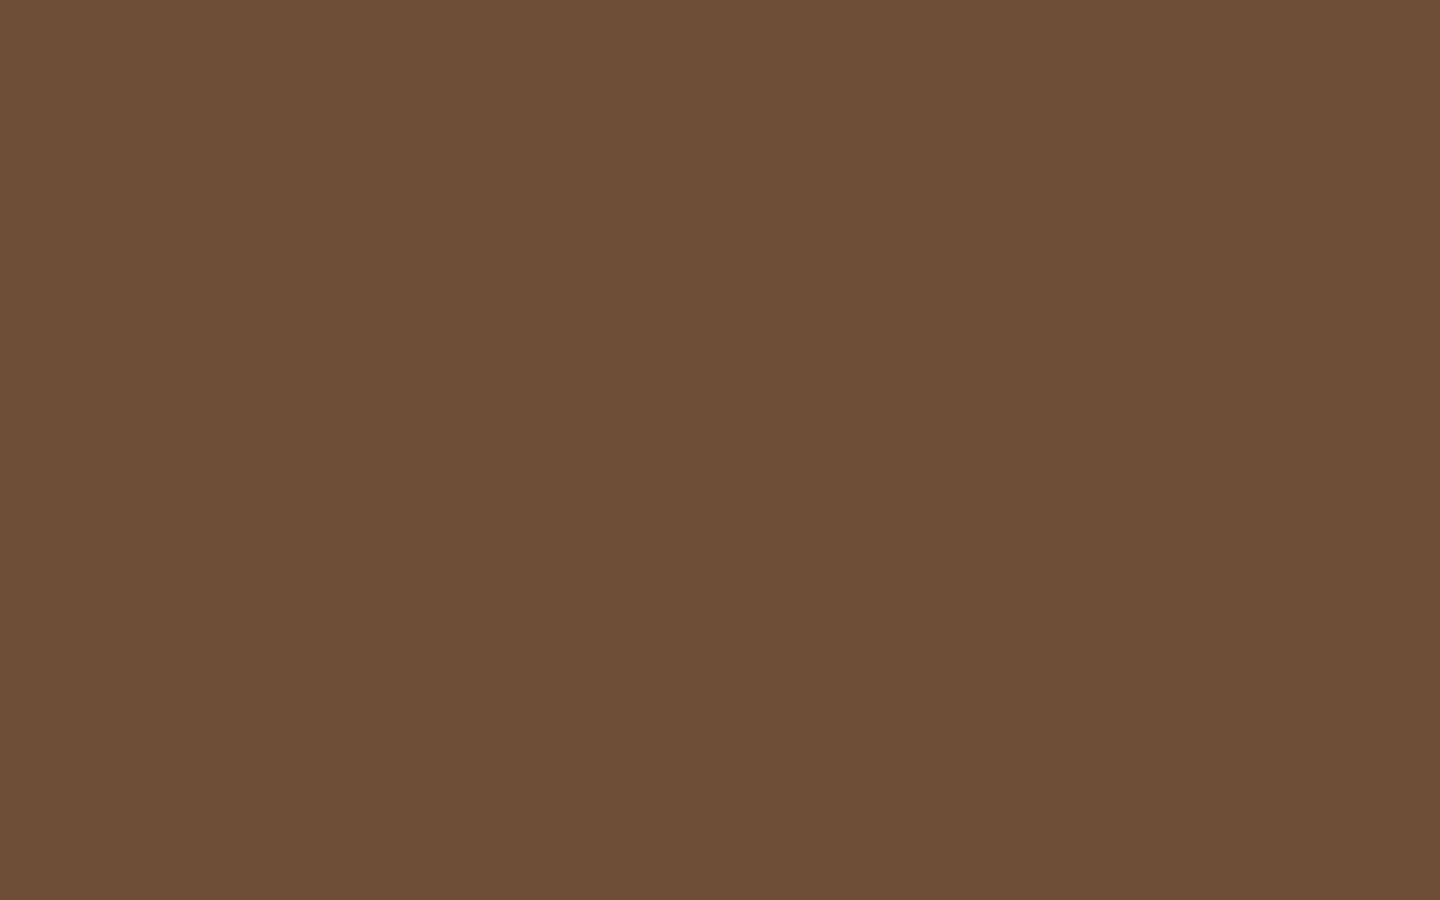 1440x900 Tuscan Brown Solid Color Background